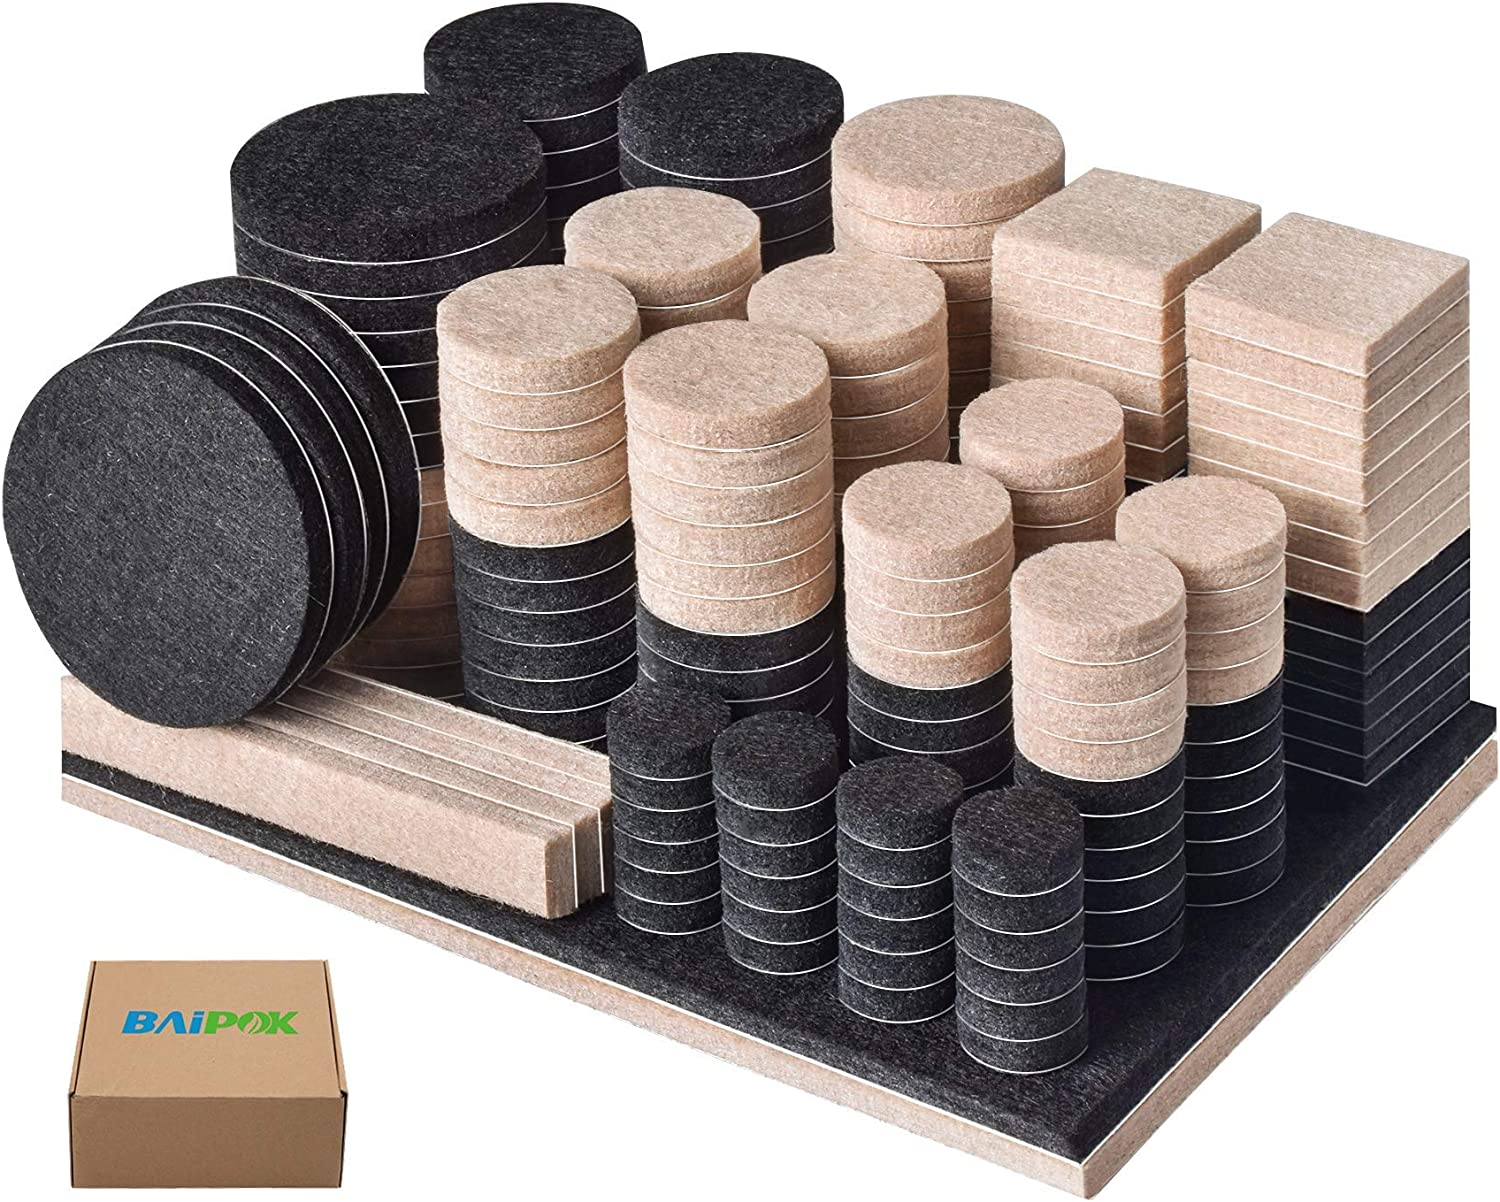 Furniture Pads 300 Pcs Furniture Felt Pads Two Colors (Black 130 + Beige 110), Various Sizes Self Adhesive Felt Pads, Anti Scratch Floor Protector for Furniture Legs Hard Floor with 60 Cabinet Bumpers